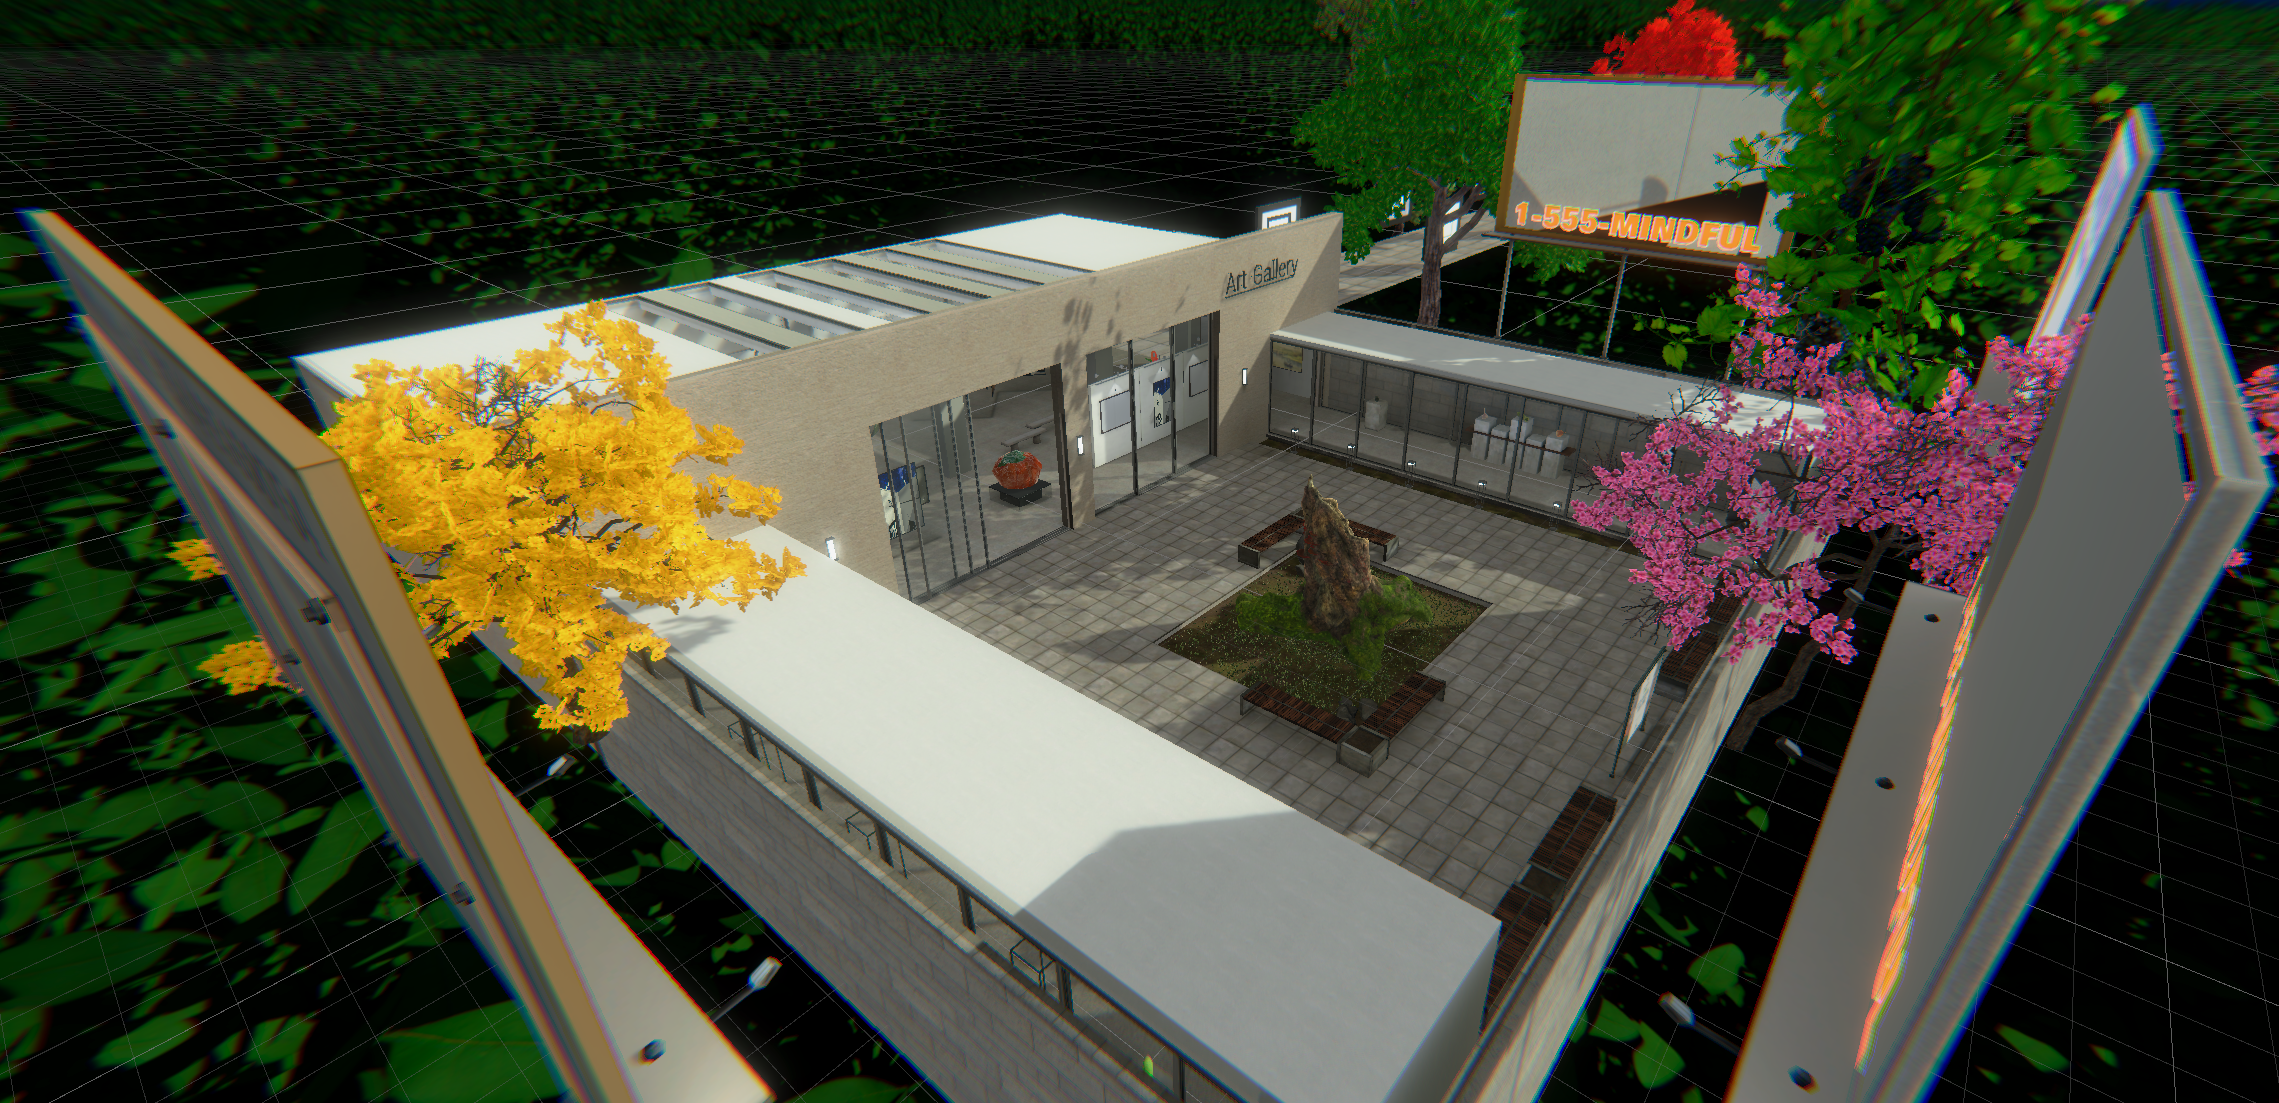 A birds-eye-view of the VR art gallery space. Some billboards and trees surround it.